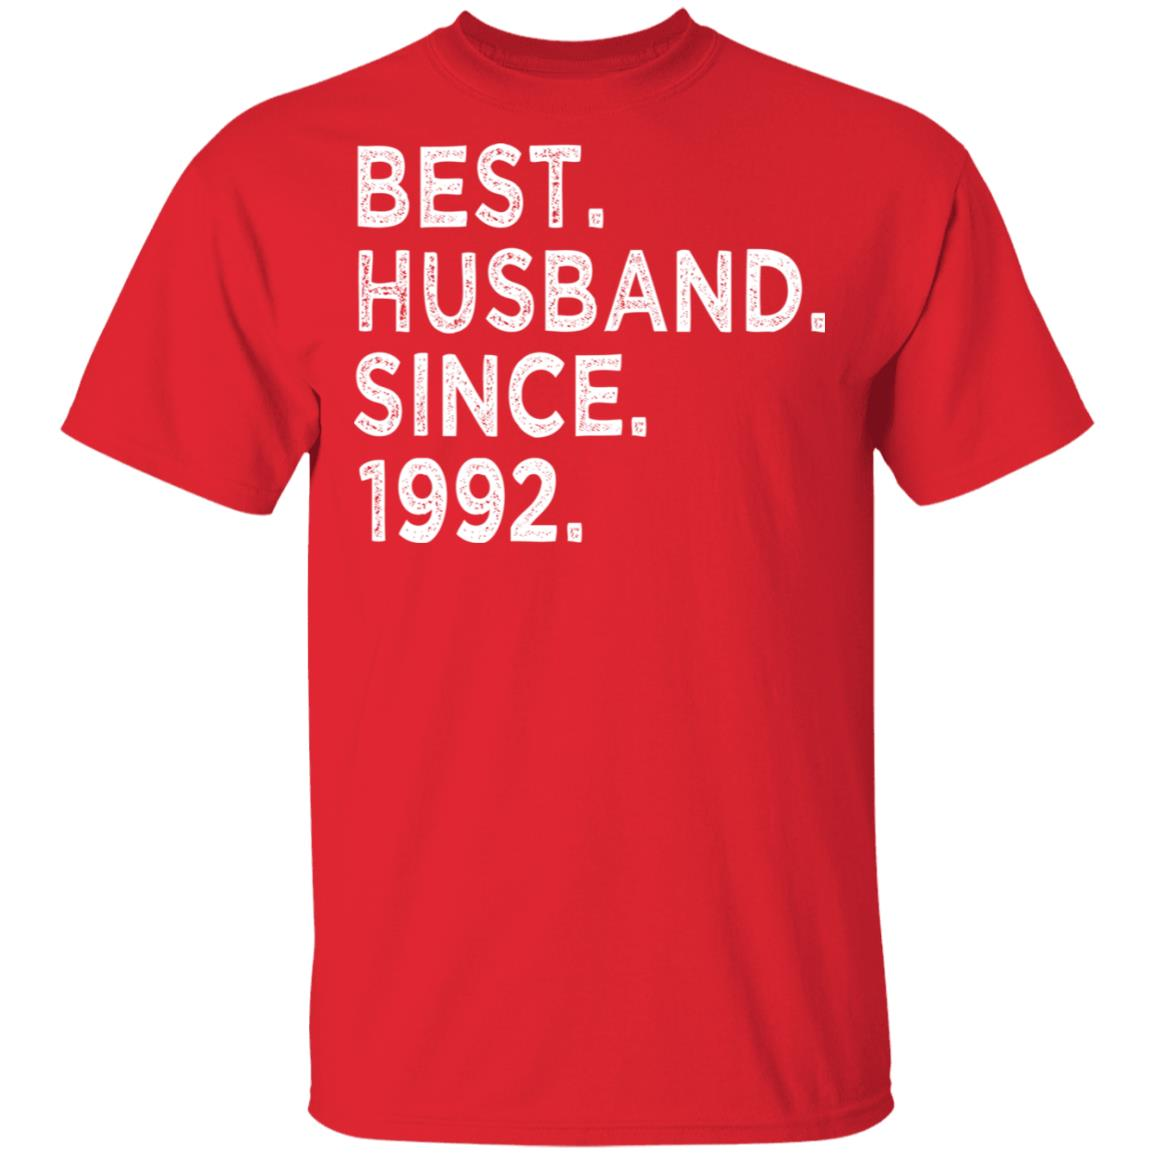 Best-husband-since-1992-wedding-anniversary-t-shirt 99promocode